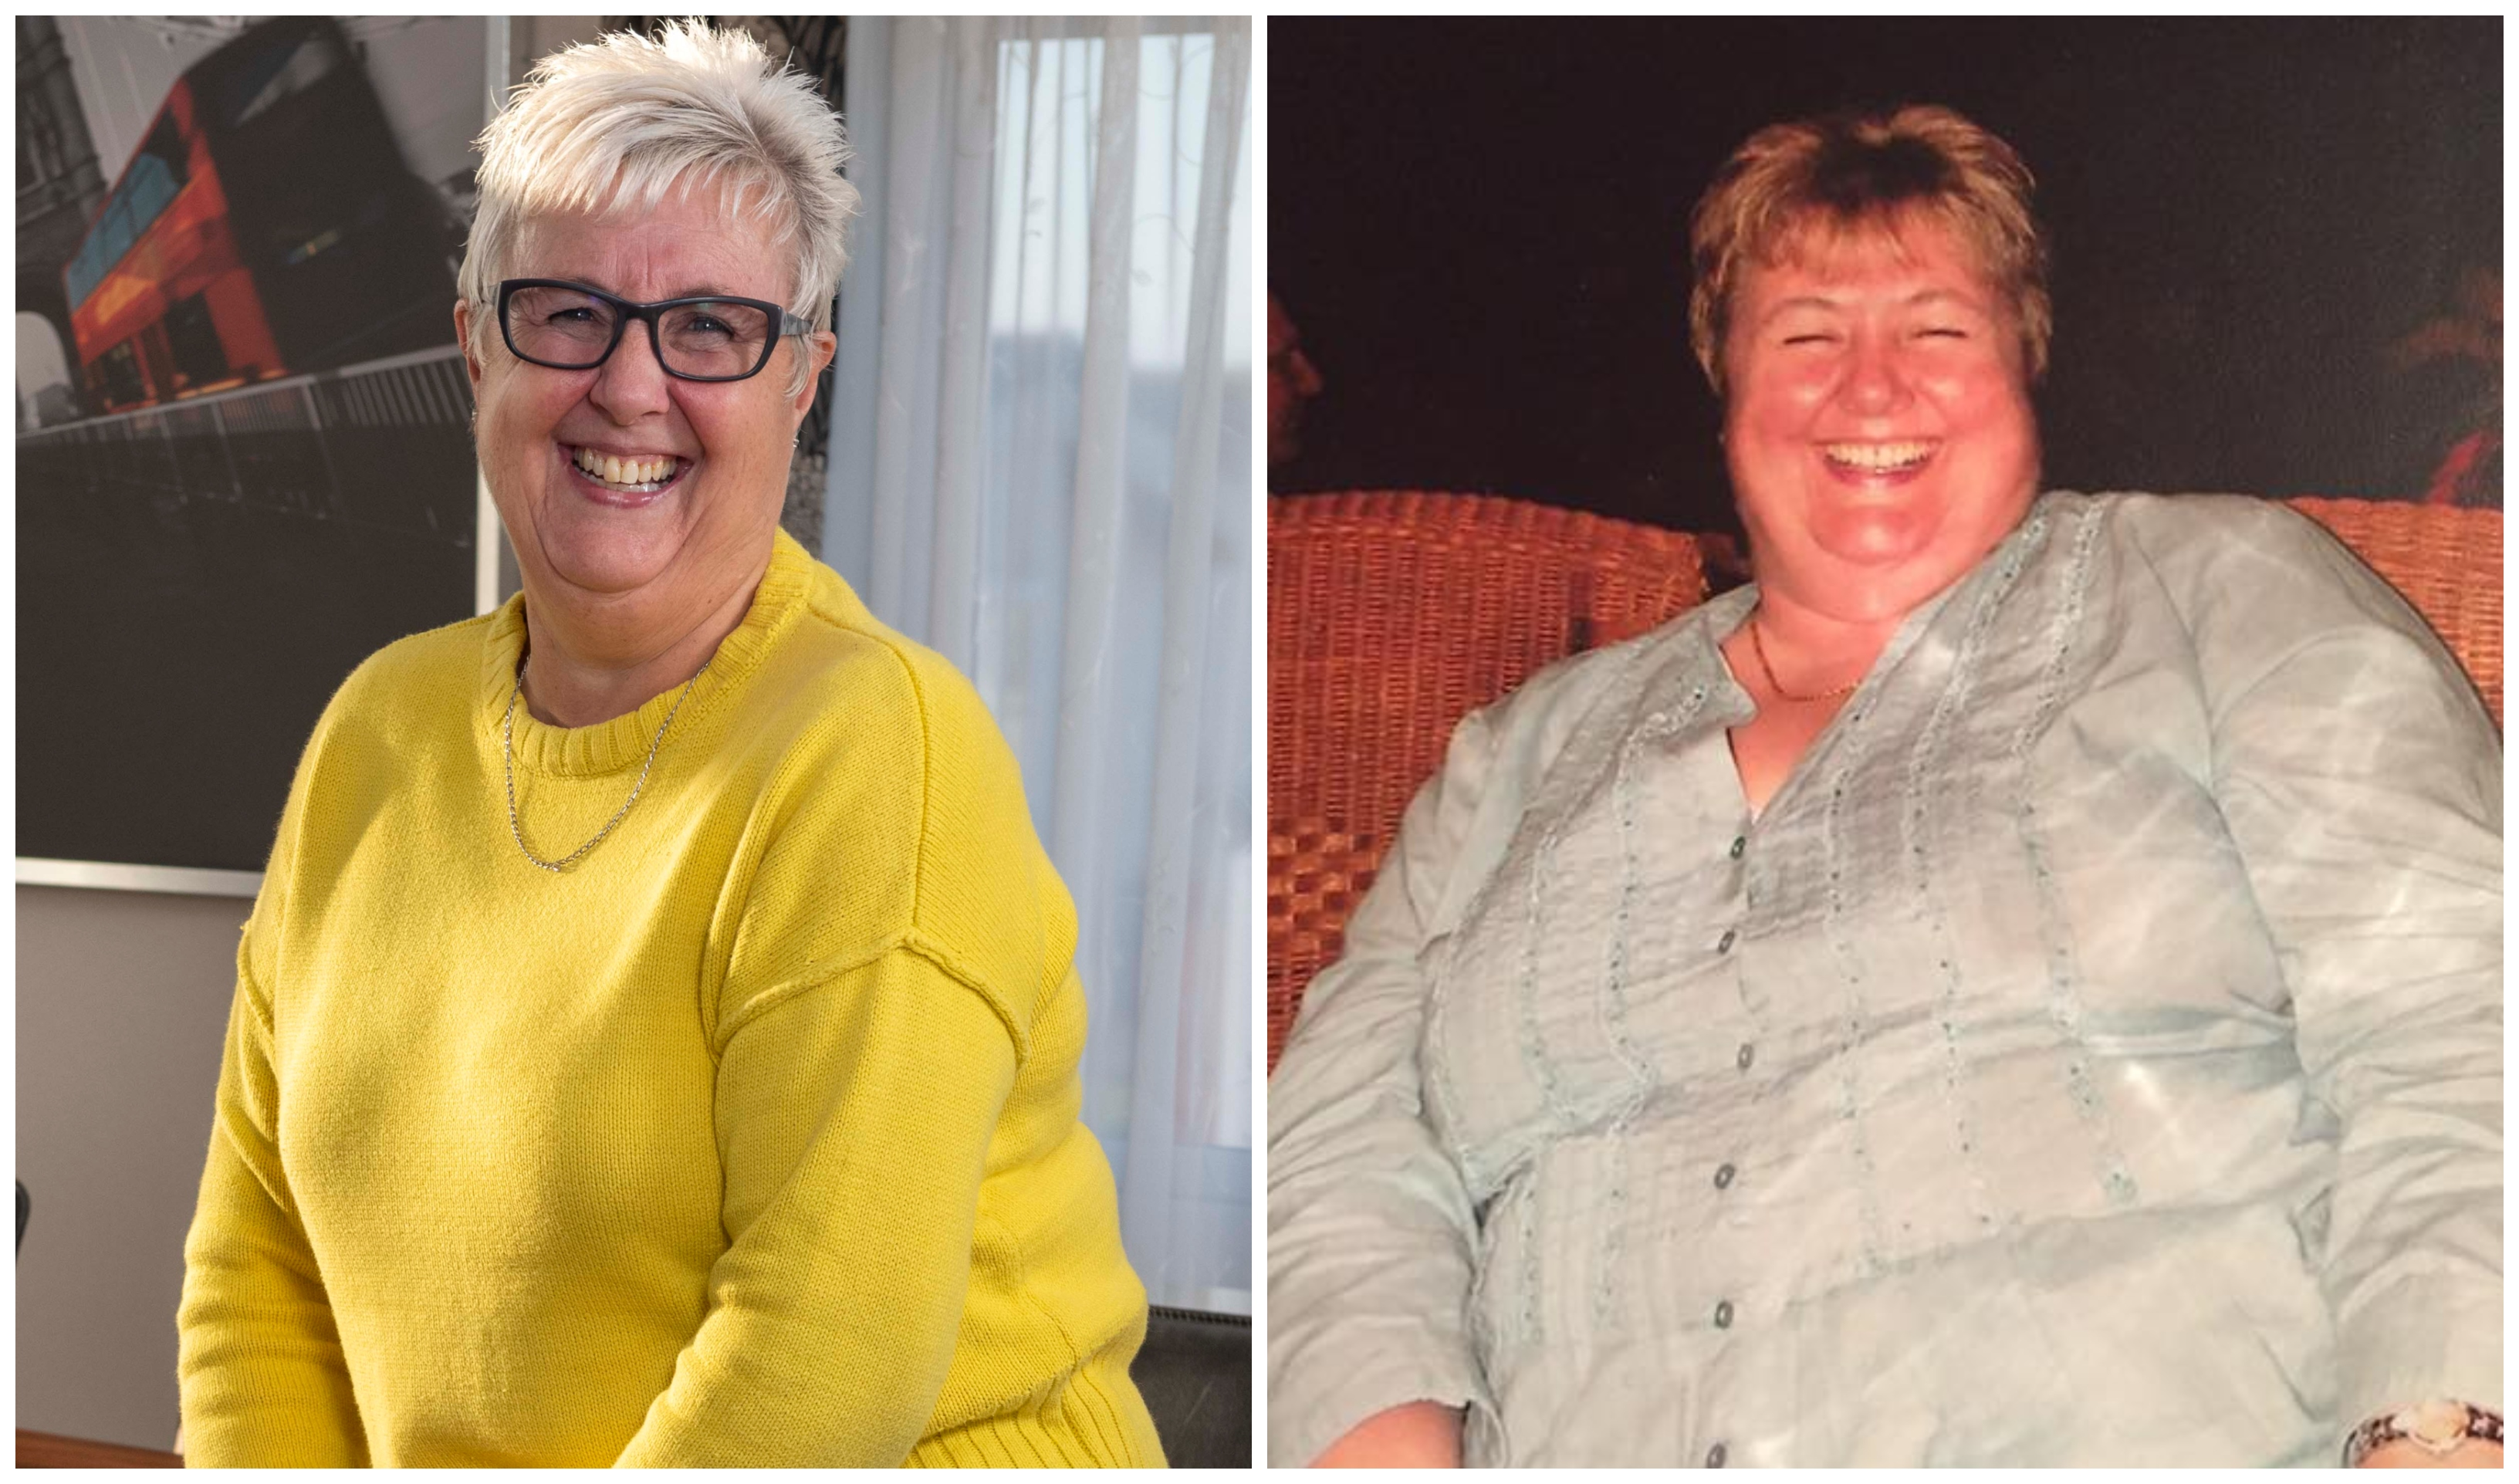 Doreen was a size 20 before the surgery which changed her life in 2008